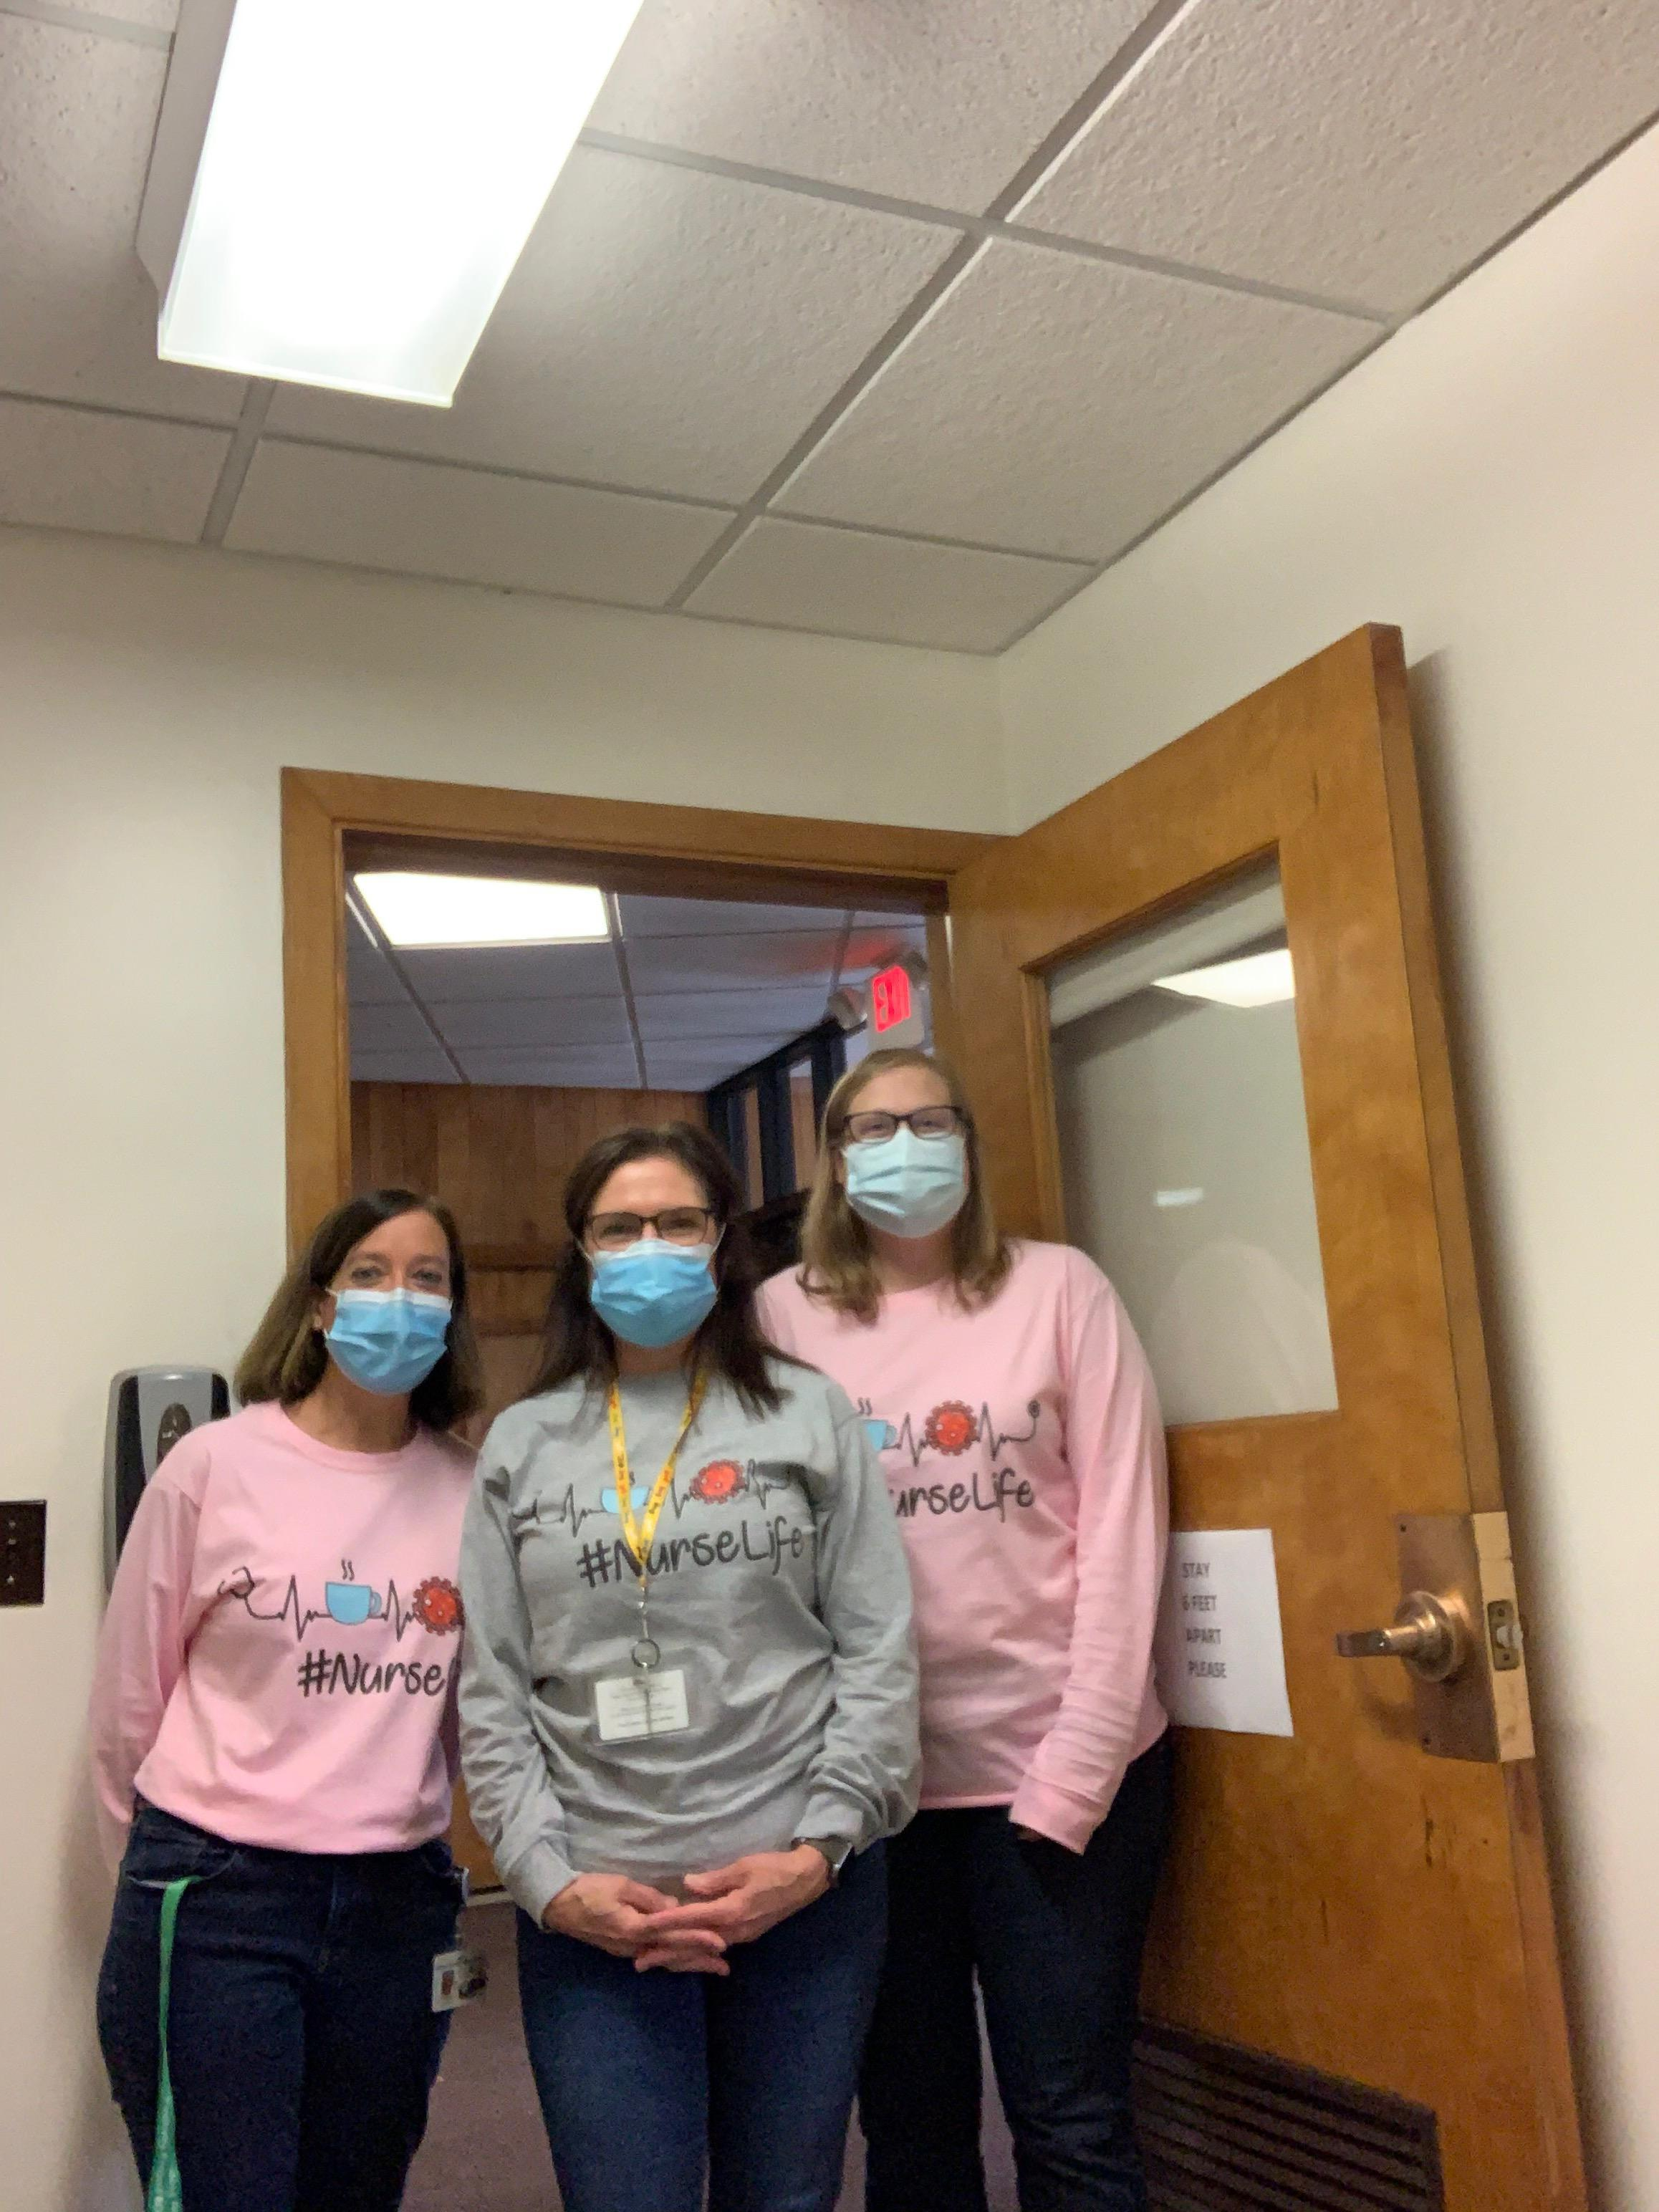 Three school nurses in masks stand for a photo